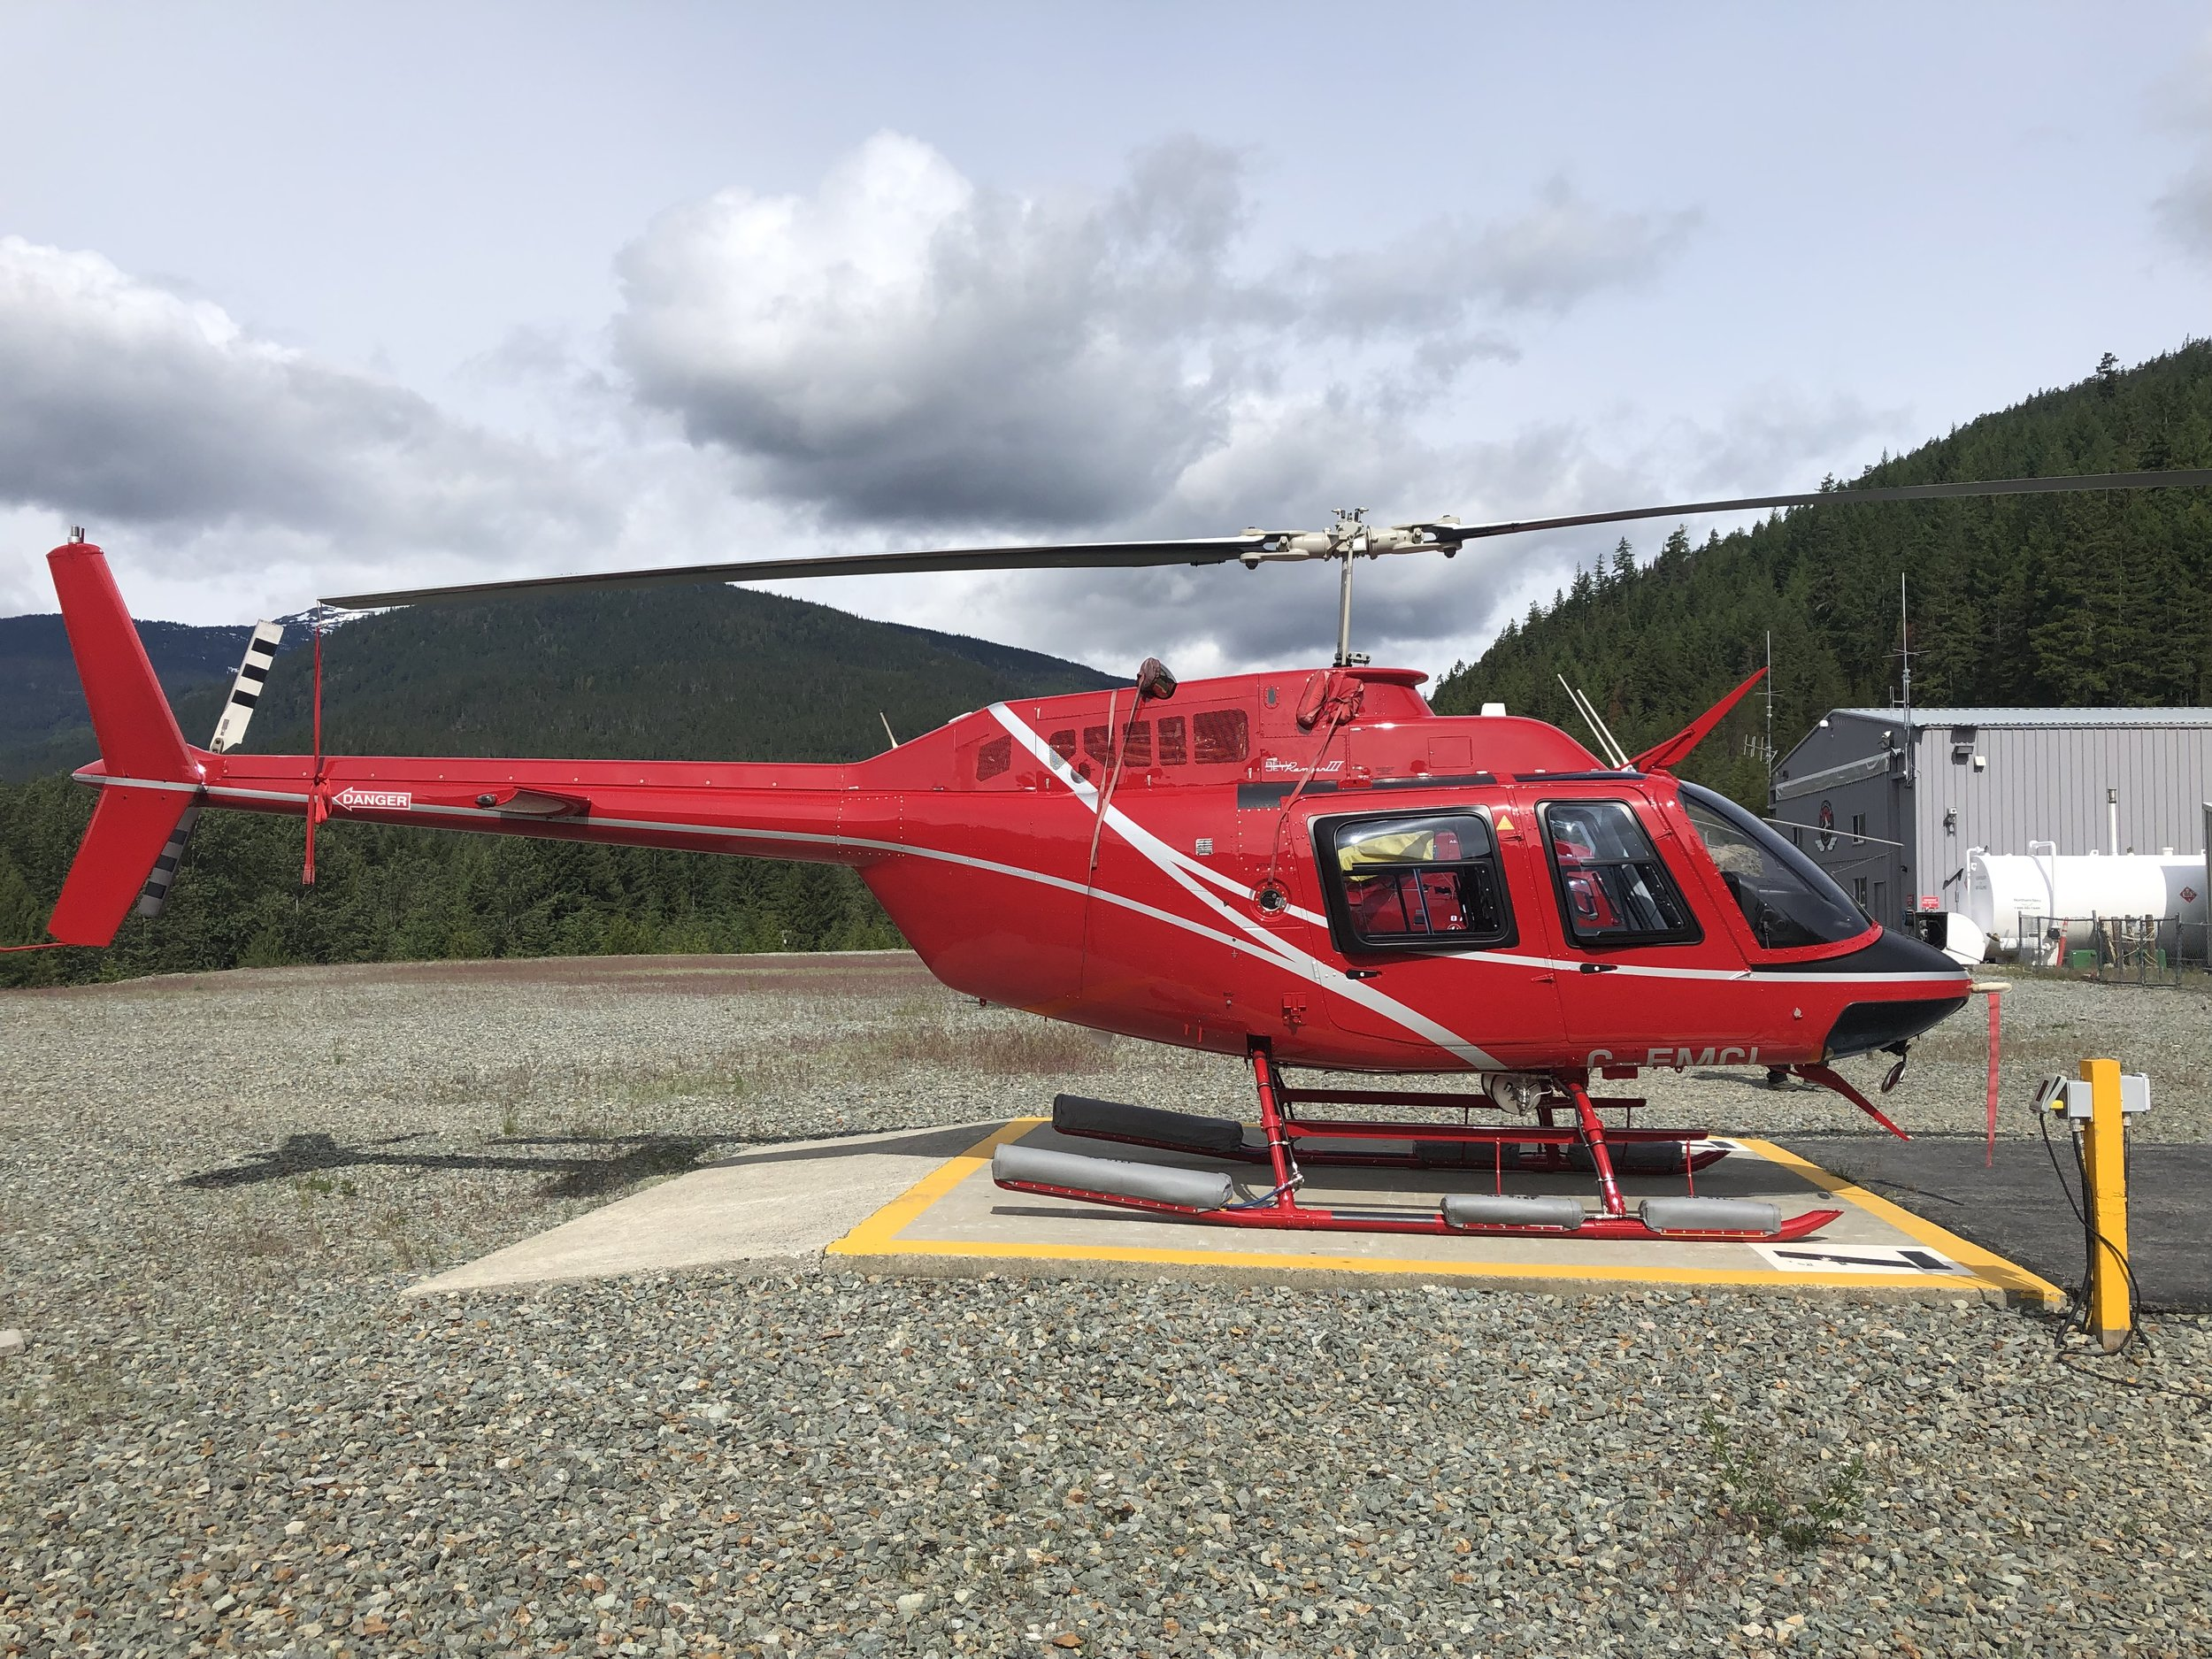 BELL 206B JET RANGER (C-GPGP, C-GBFH, C-GJSD, C-GHMH, C-FMCL)